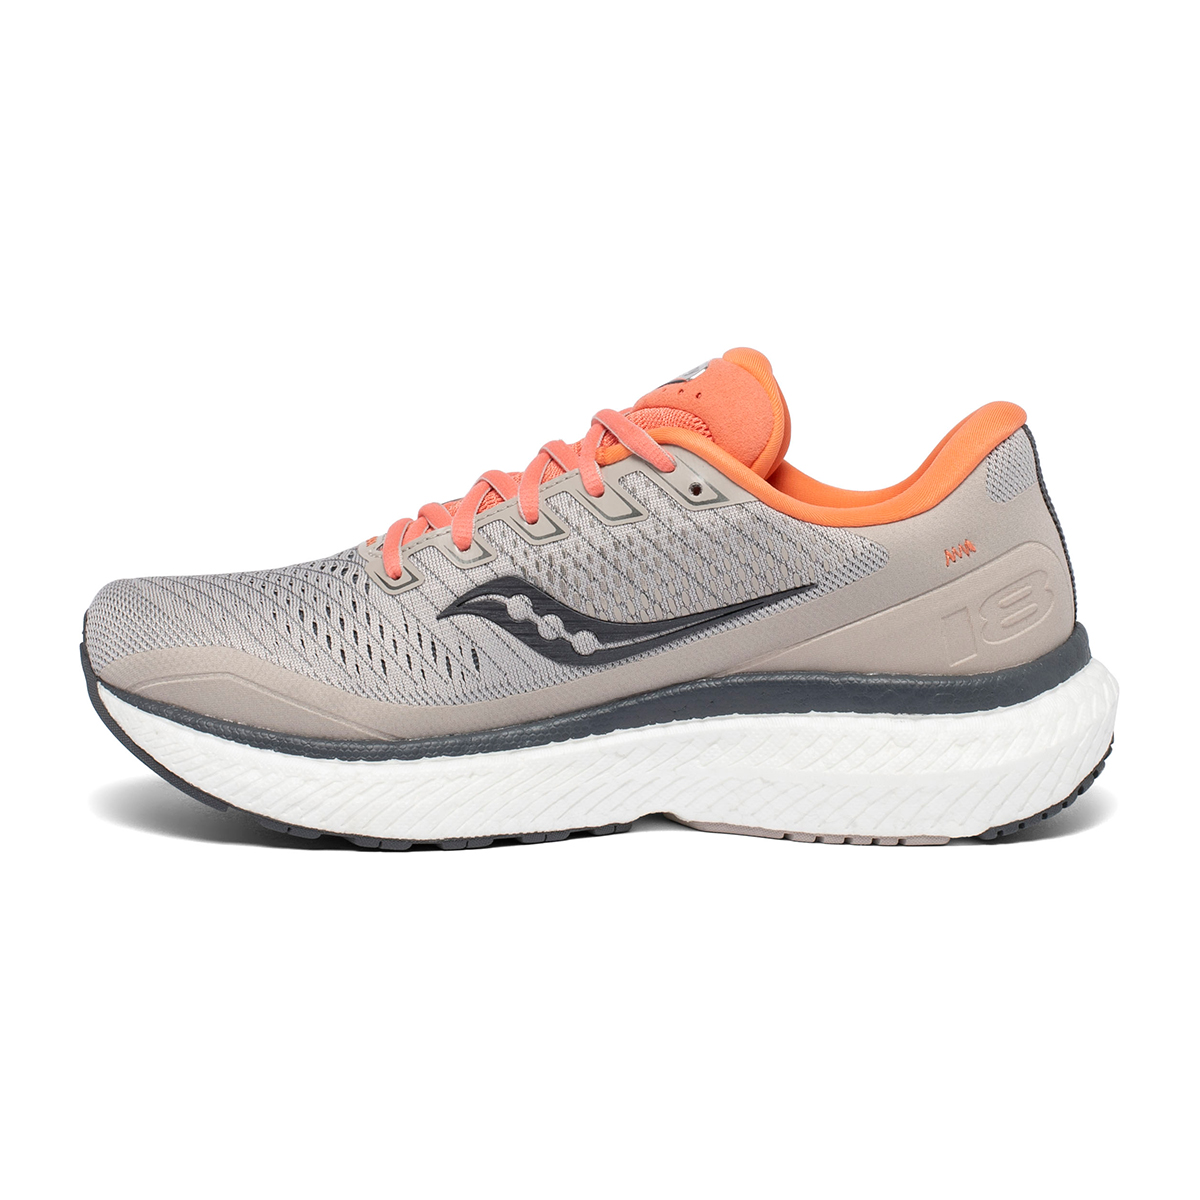 Women's Saucony Triumph 18 Running Shoe - Color: Moonrock/Coral - Size: 5 - Width: Regular, Moonrock/Coral, large, image 3